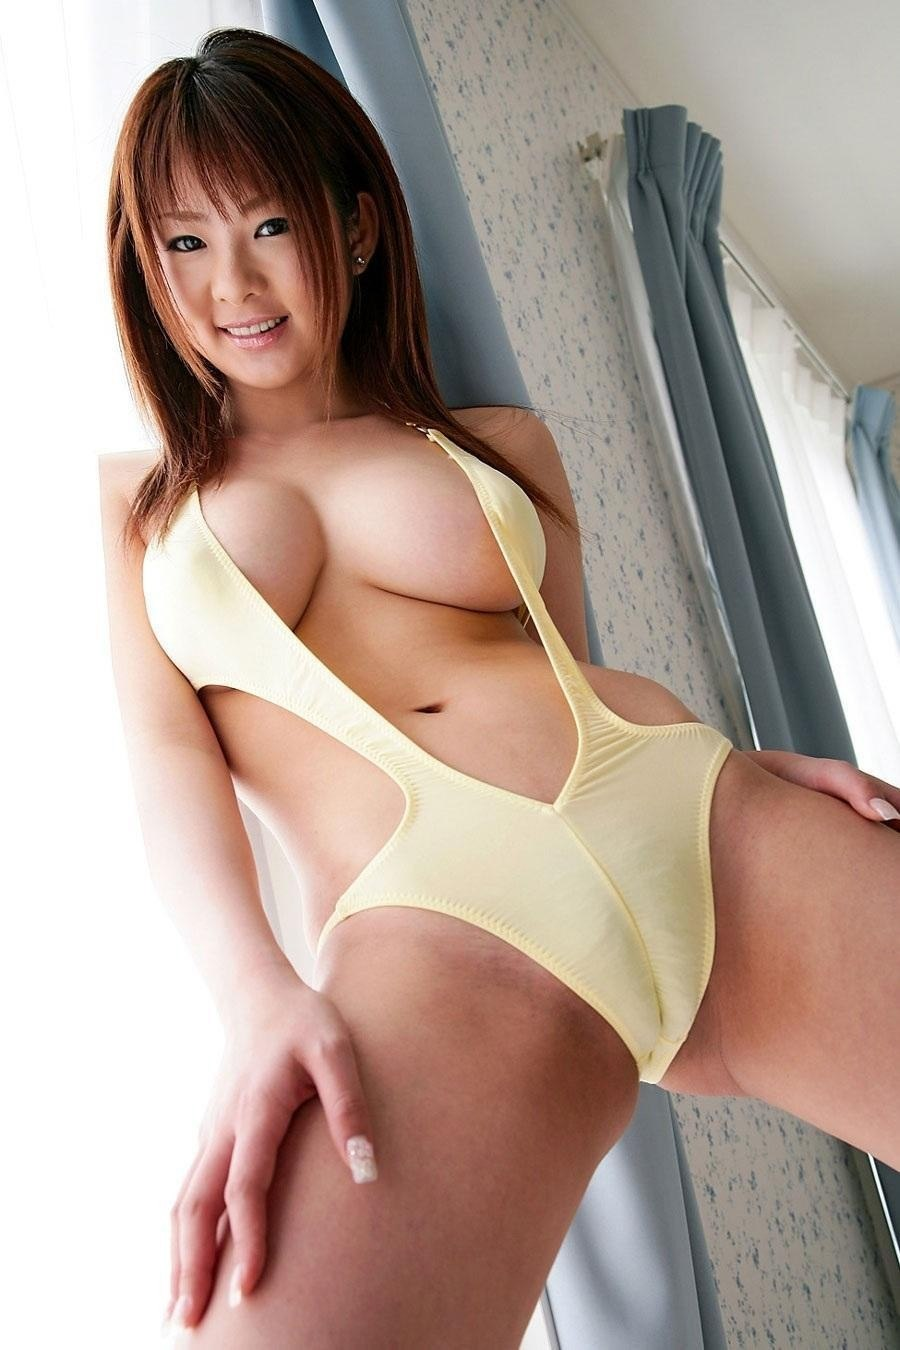 asian girls camel toe